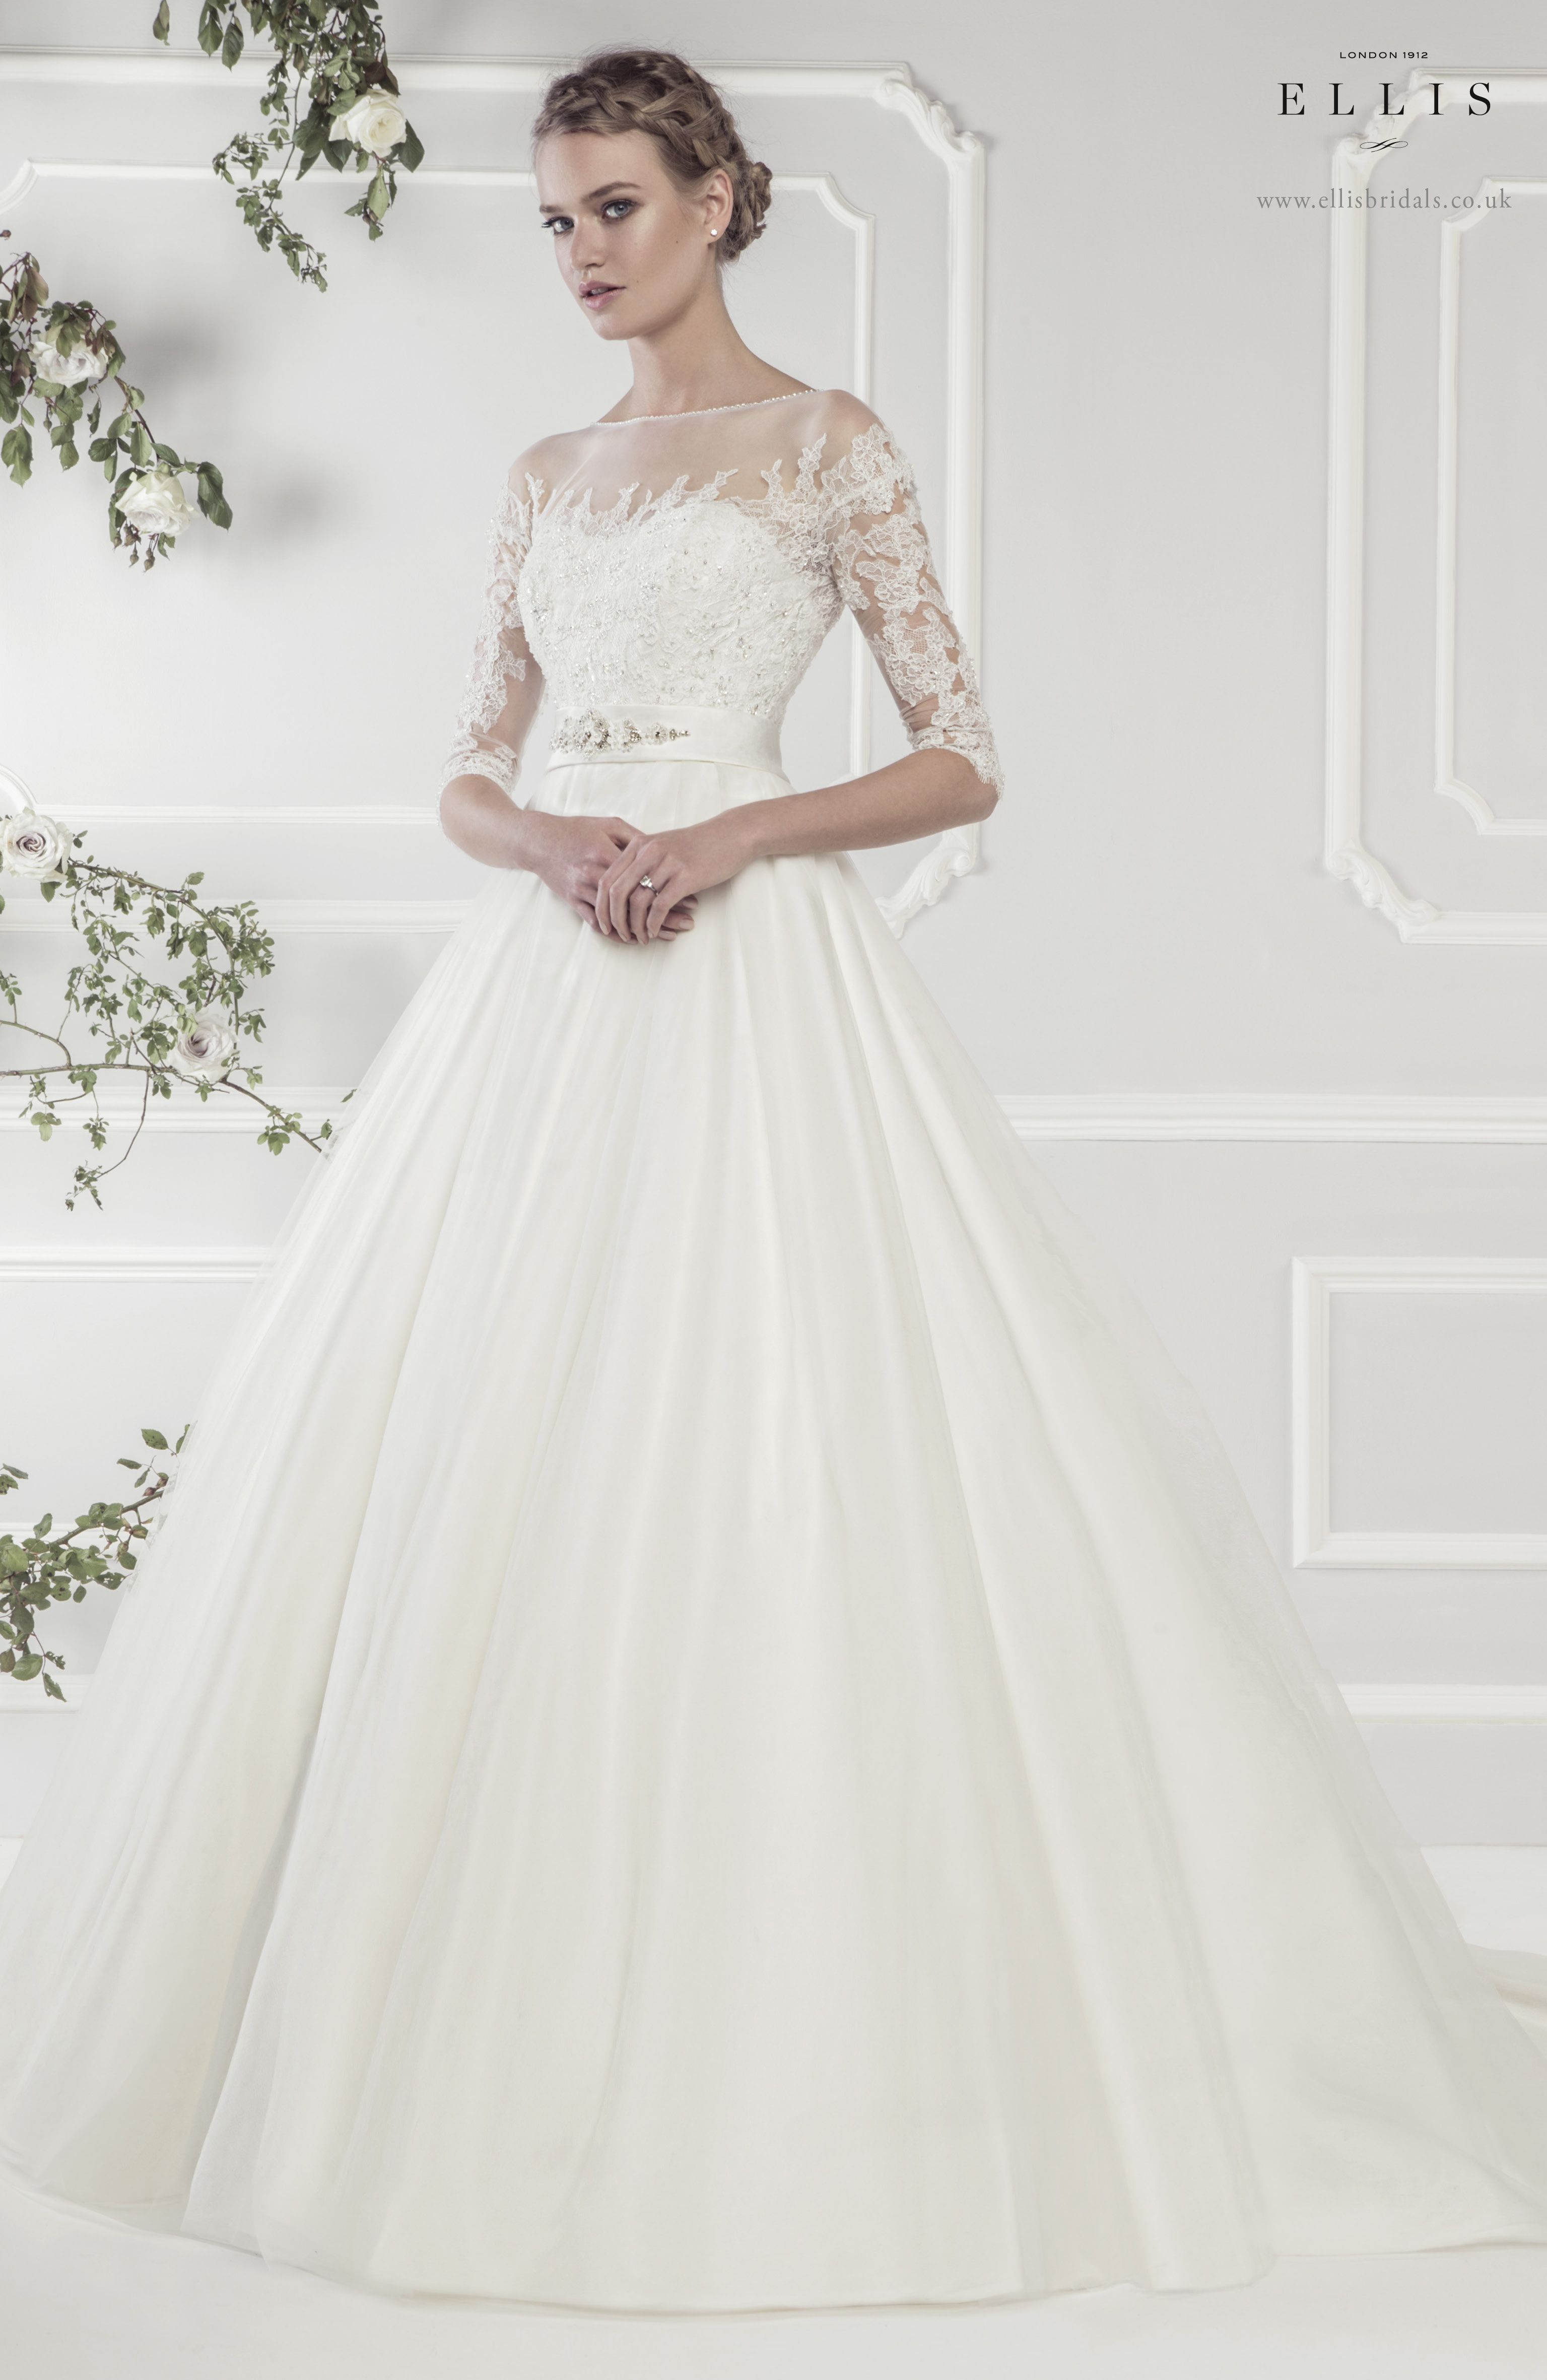 New Wedding Dresses Online Uk Only | Wedding